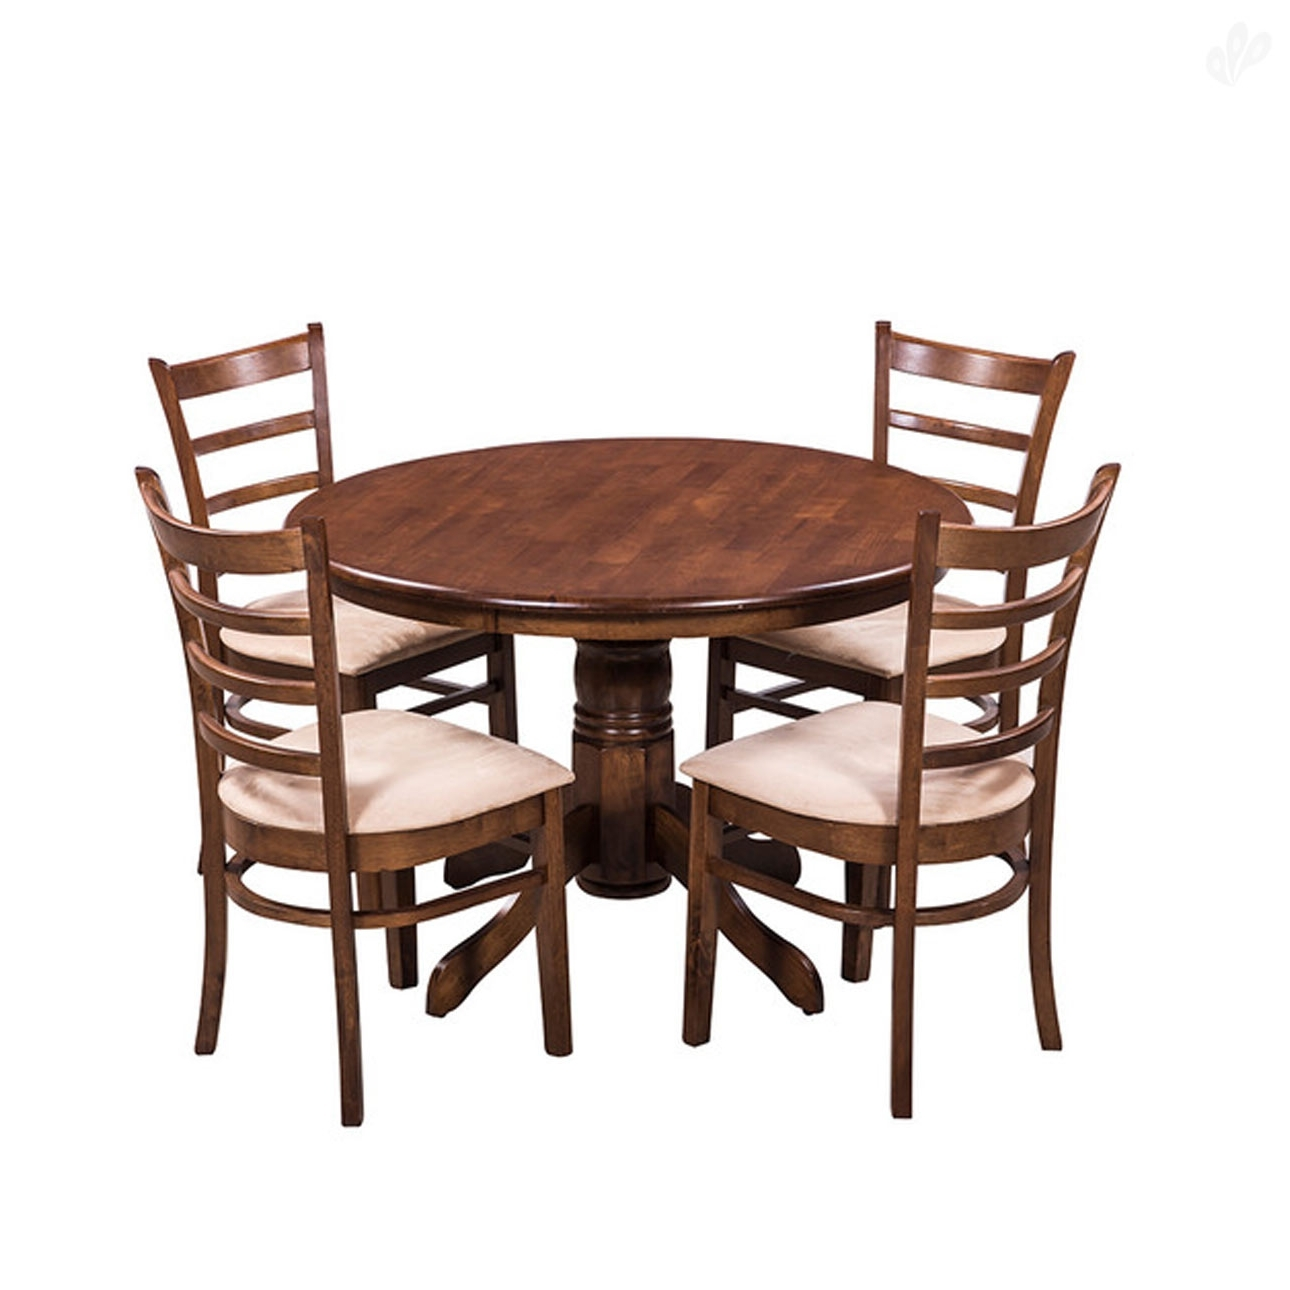 Buy Royaloak Coco Dining Table Set With 4 Chairs Solid Dining Chair Within Widely Used Round Oak Dining Tables And 4 Chairs (View 15 of 25)